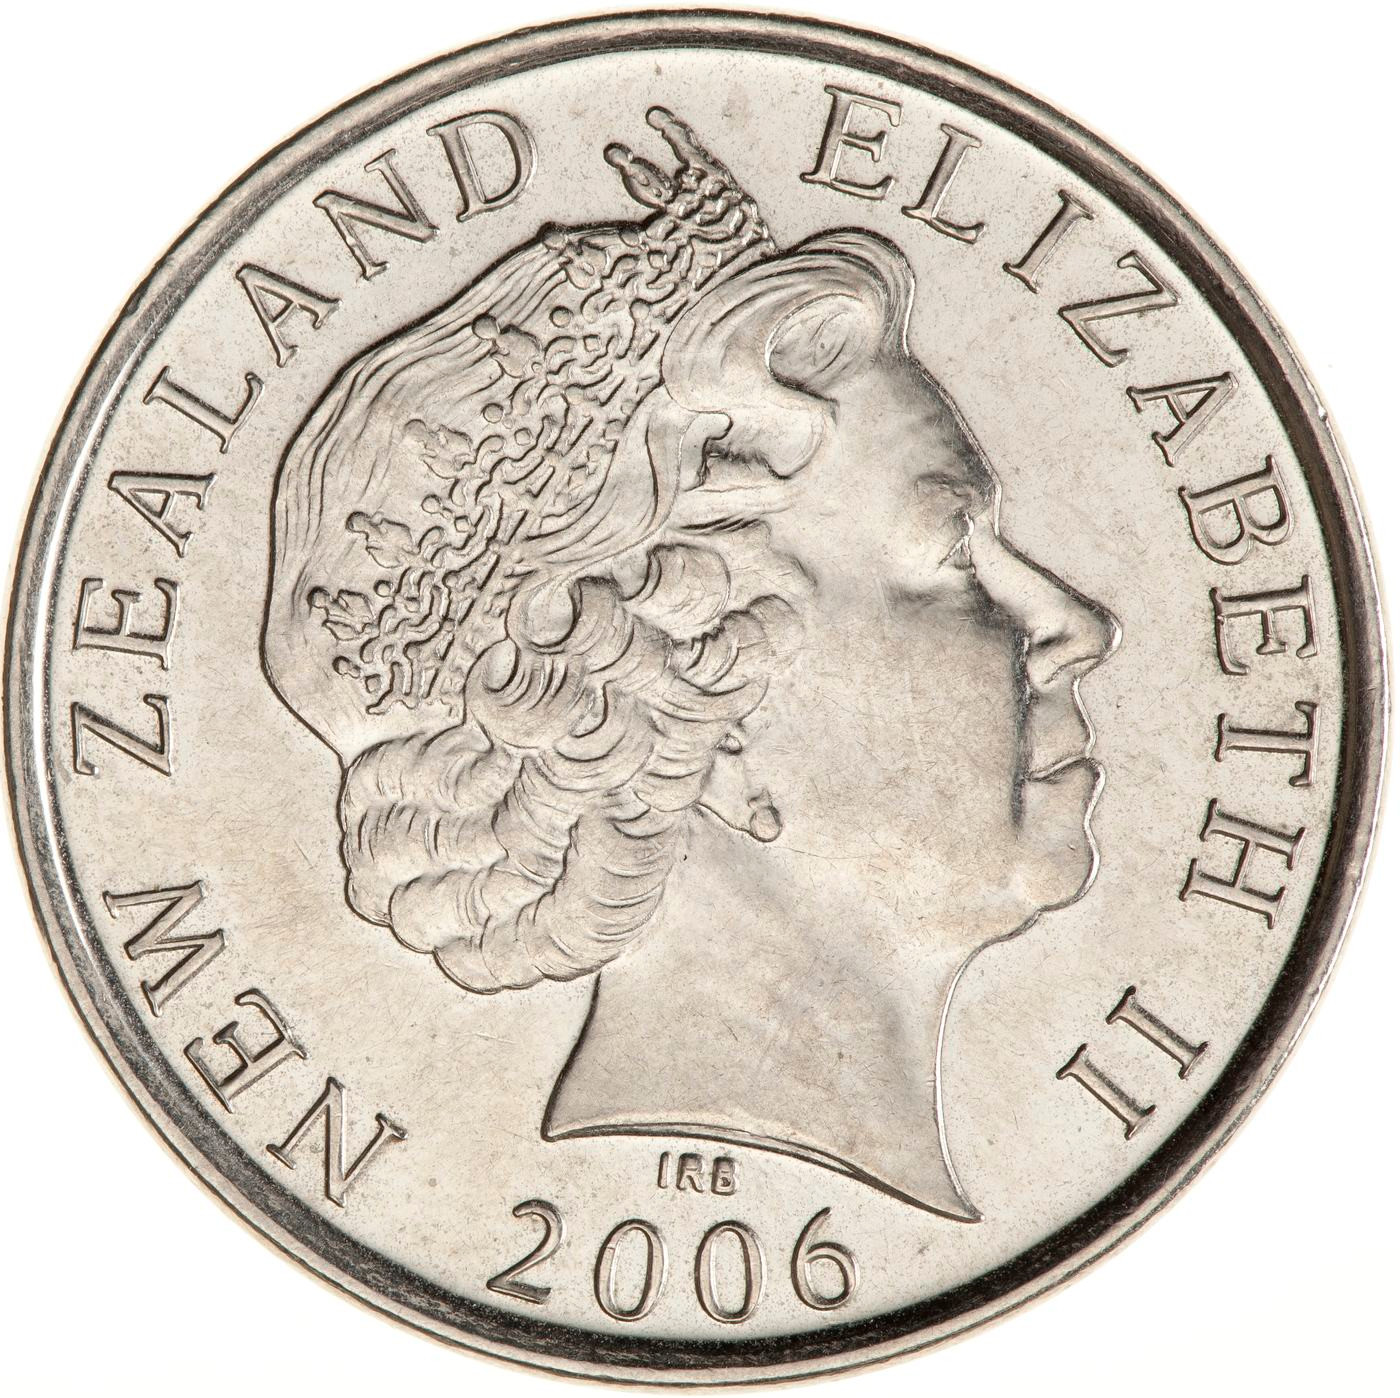 Fifty Cents 2006: Photo Coin - 50 Cents, New Zealand, 2006